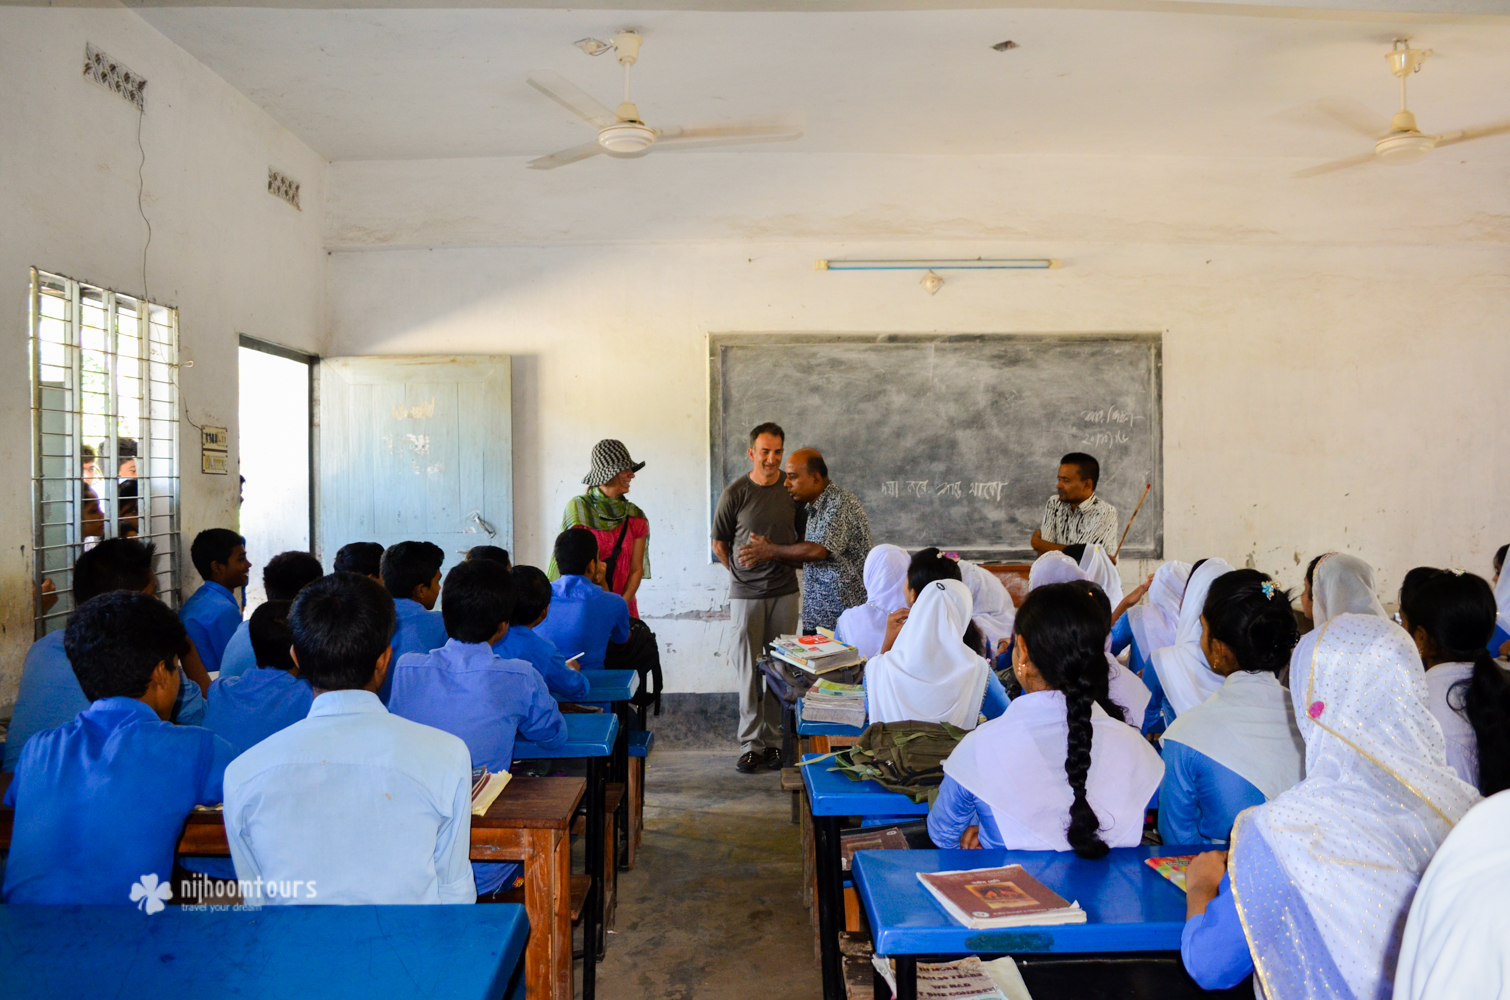 Suzan & John Skovron from USA visiting a school in southern Bangladesh in October, 2016, during their 5 days holiday